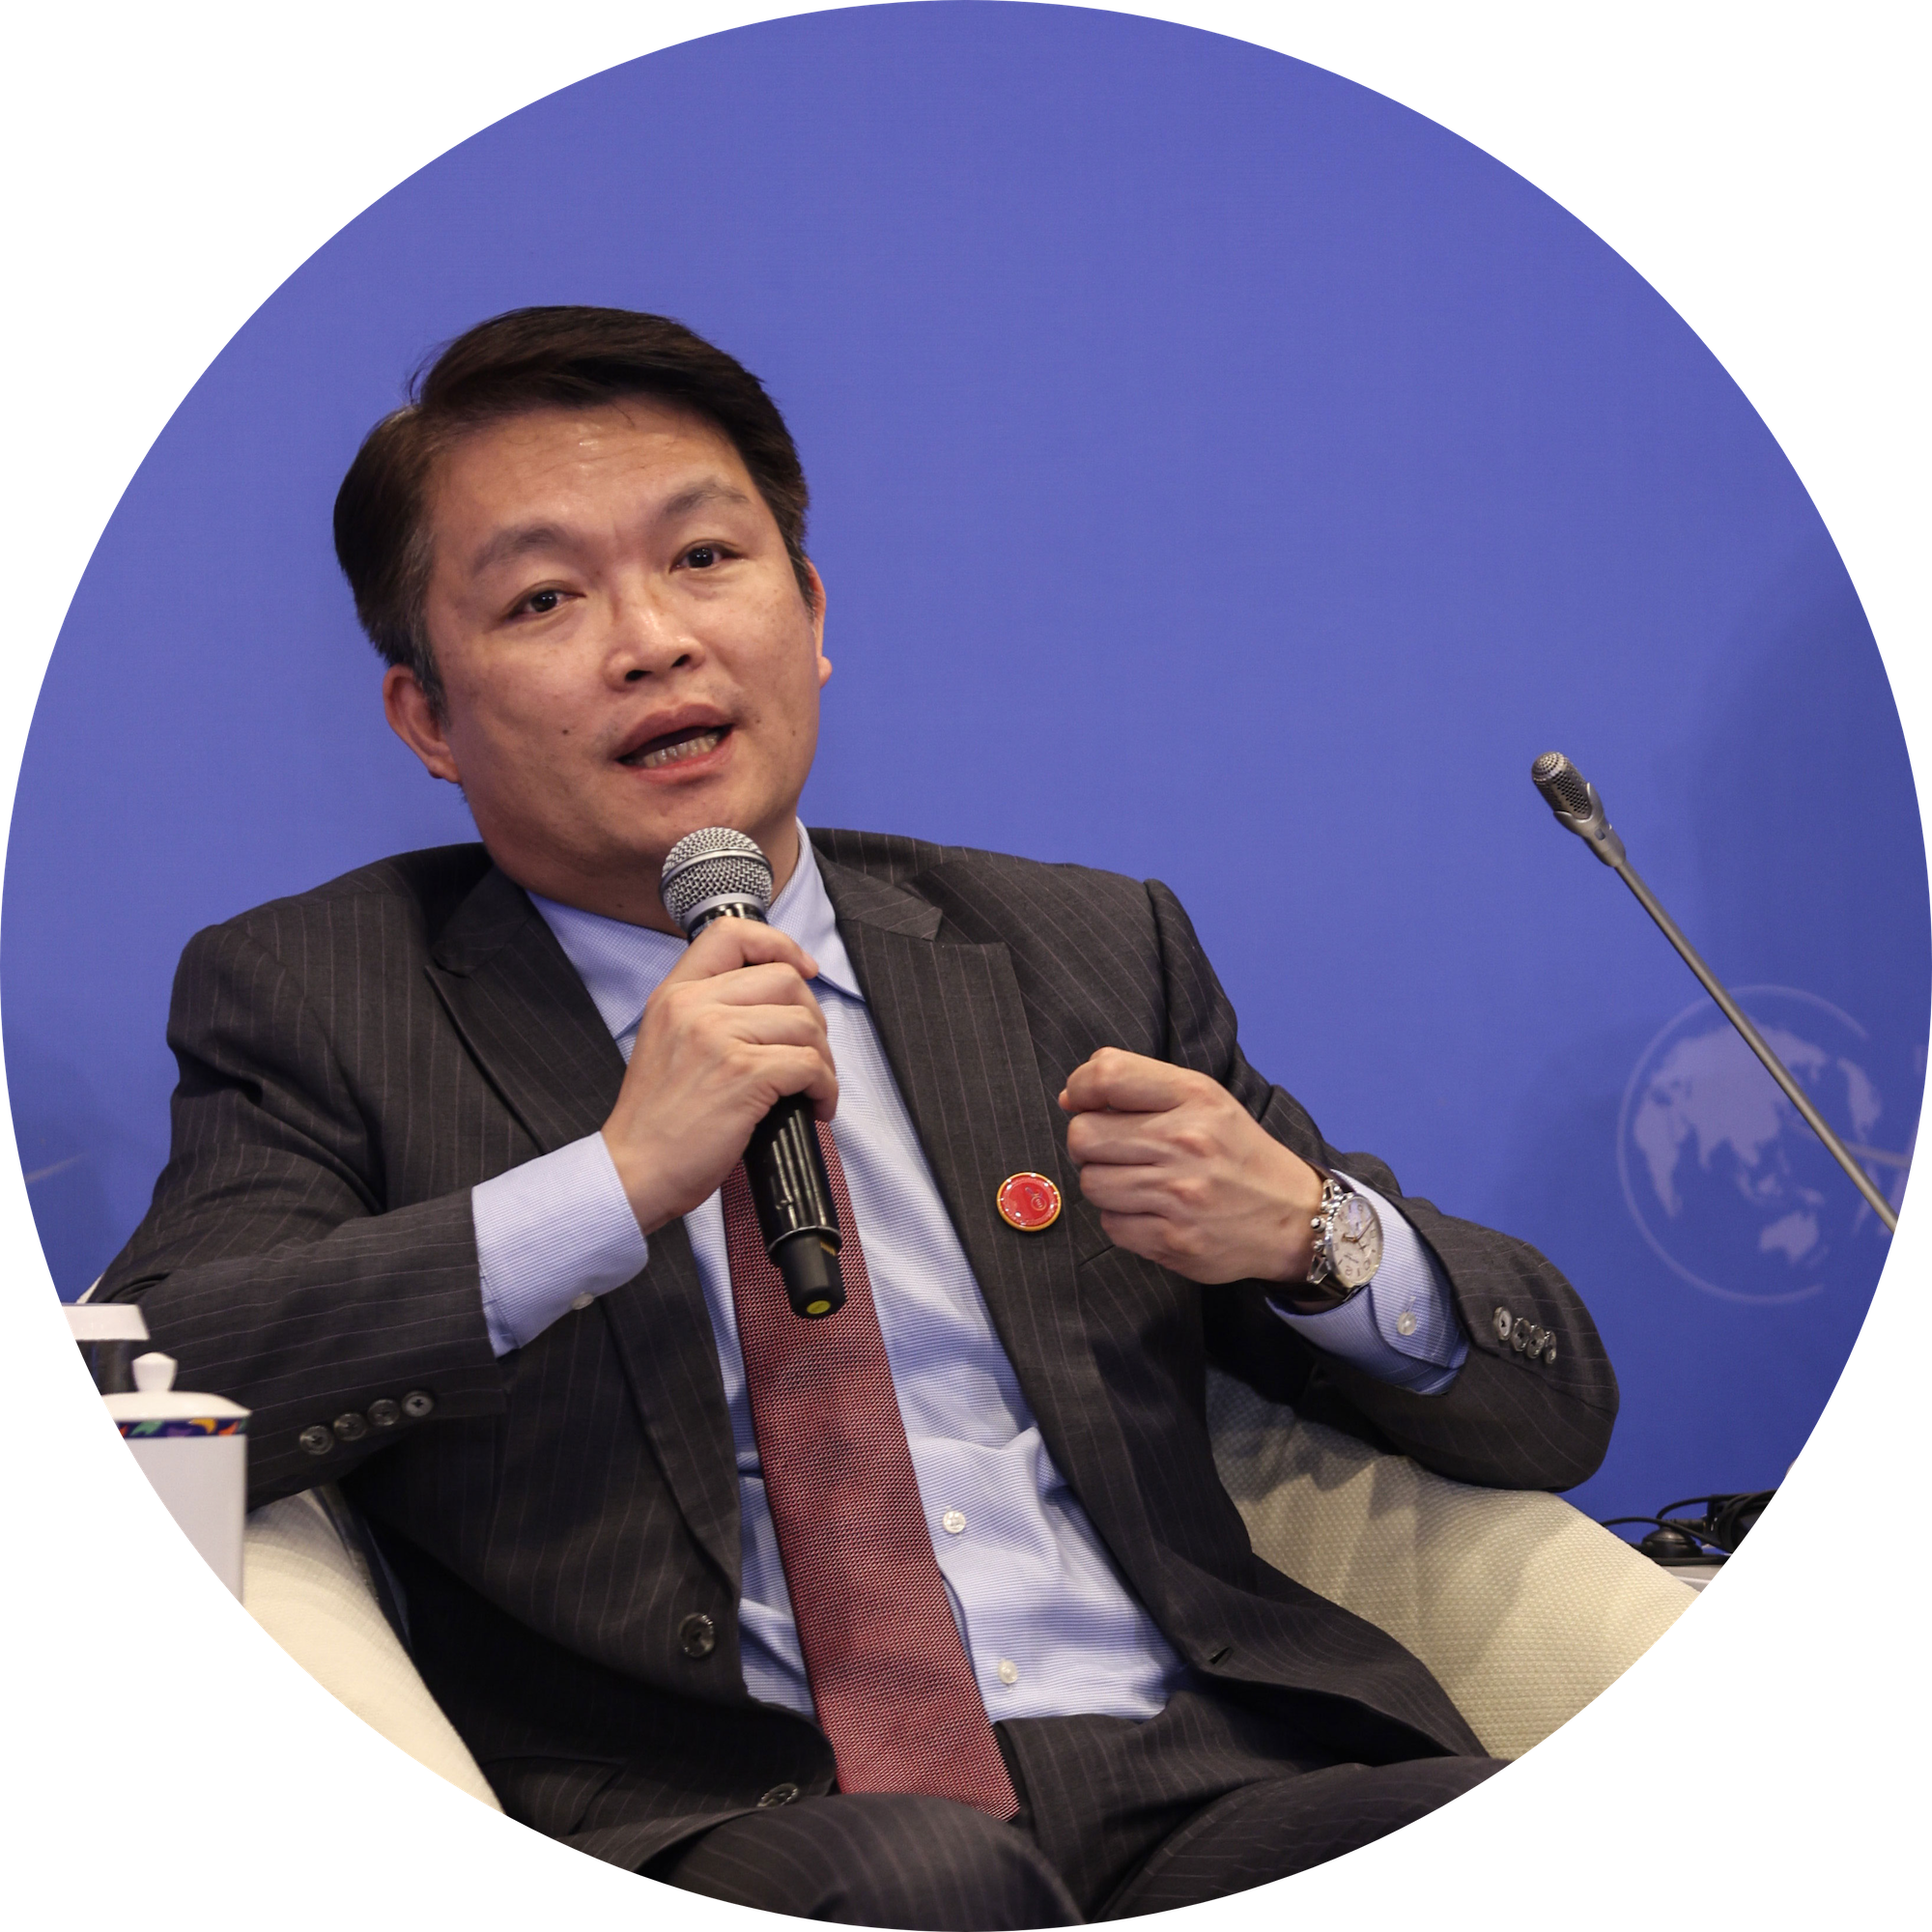 Macao's Secretary for Economy and Finance, Lei Wai Nong, speaks at the Boao Forum for Asia Annual Conference 2021